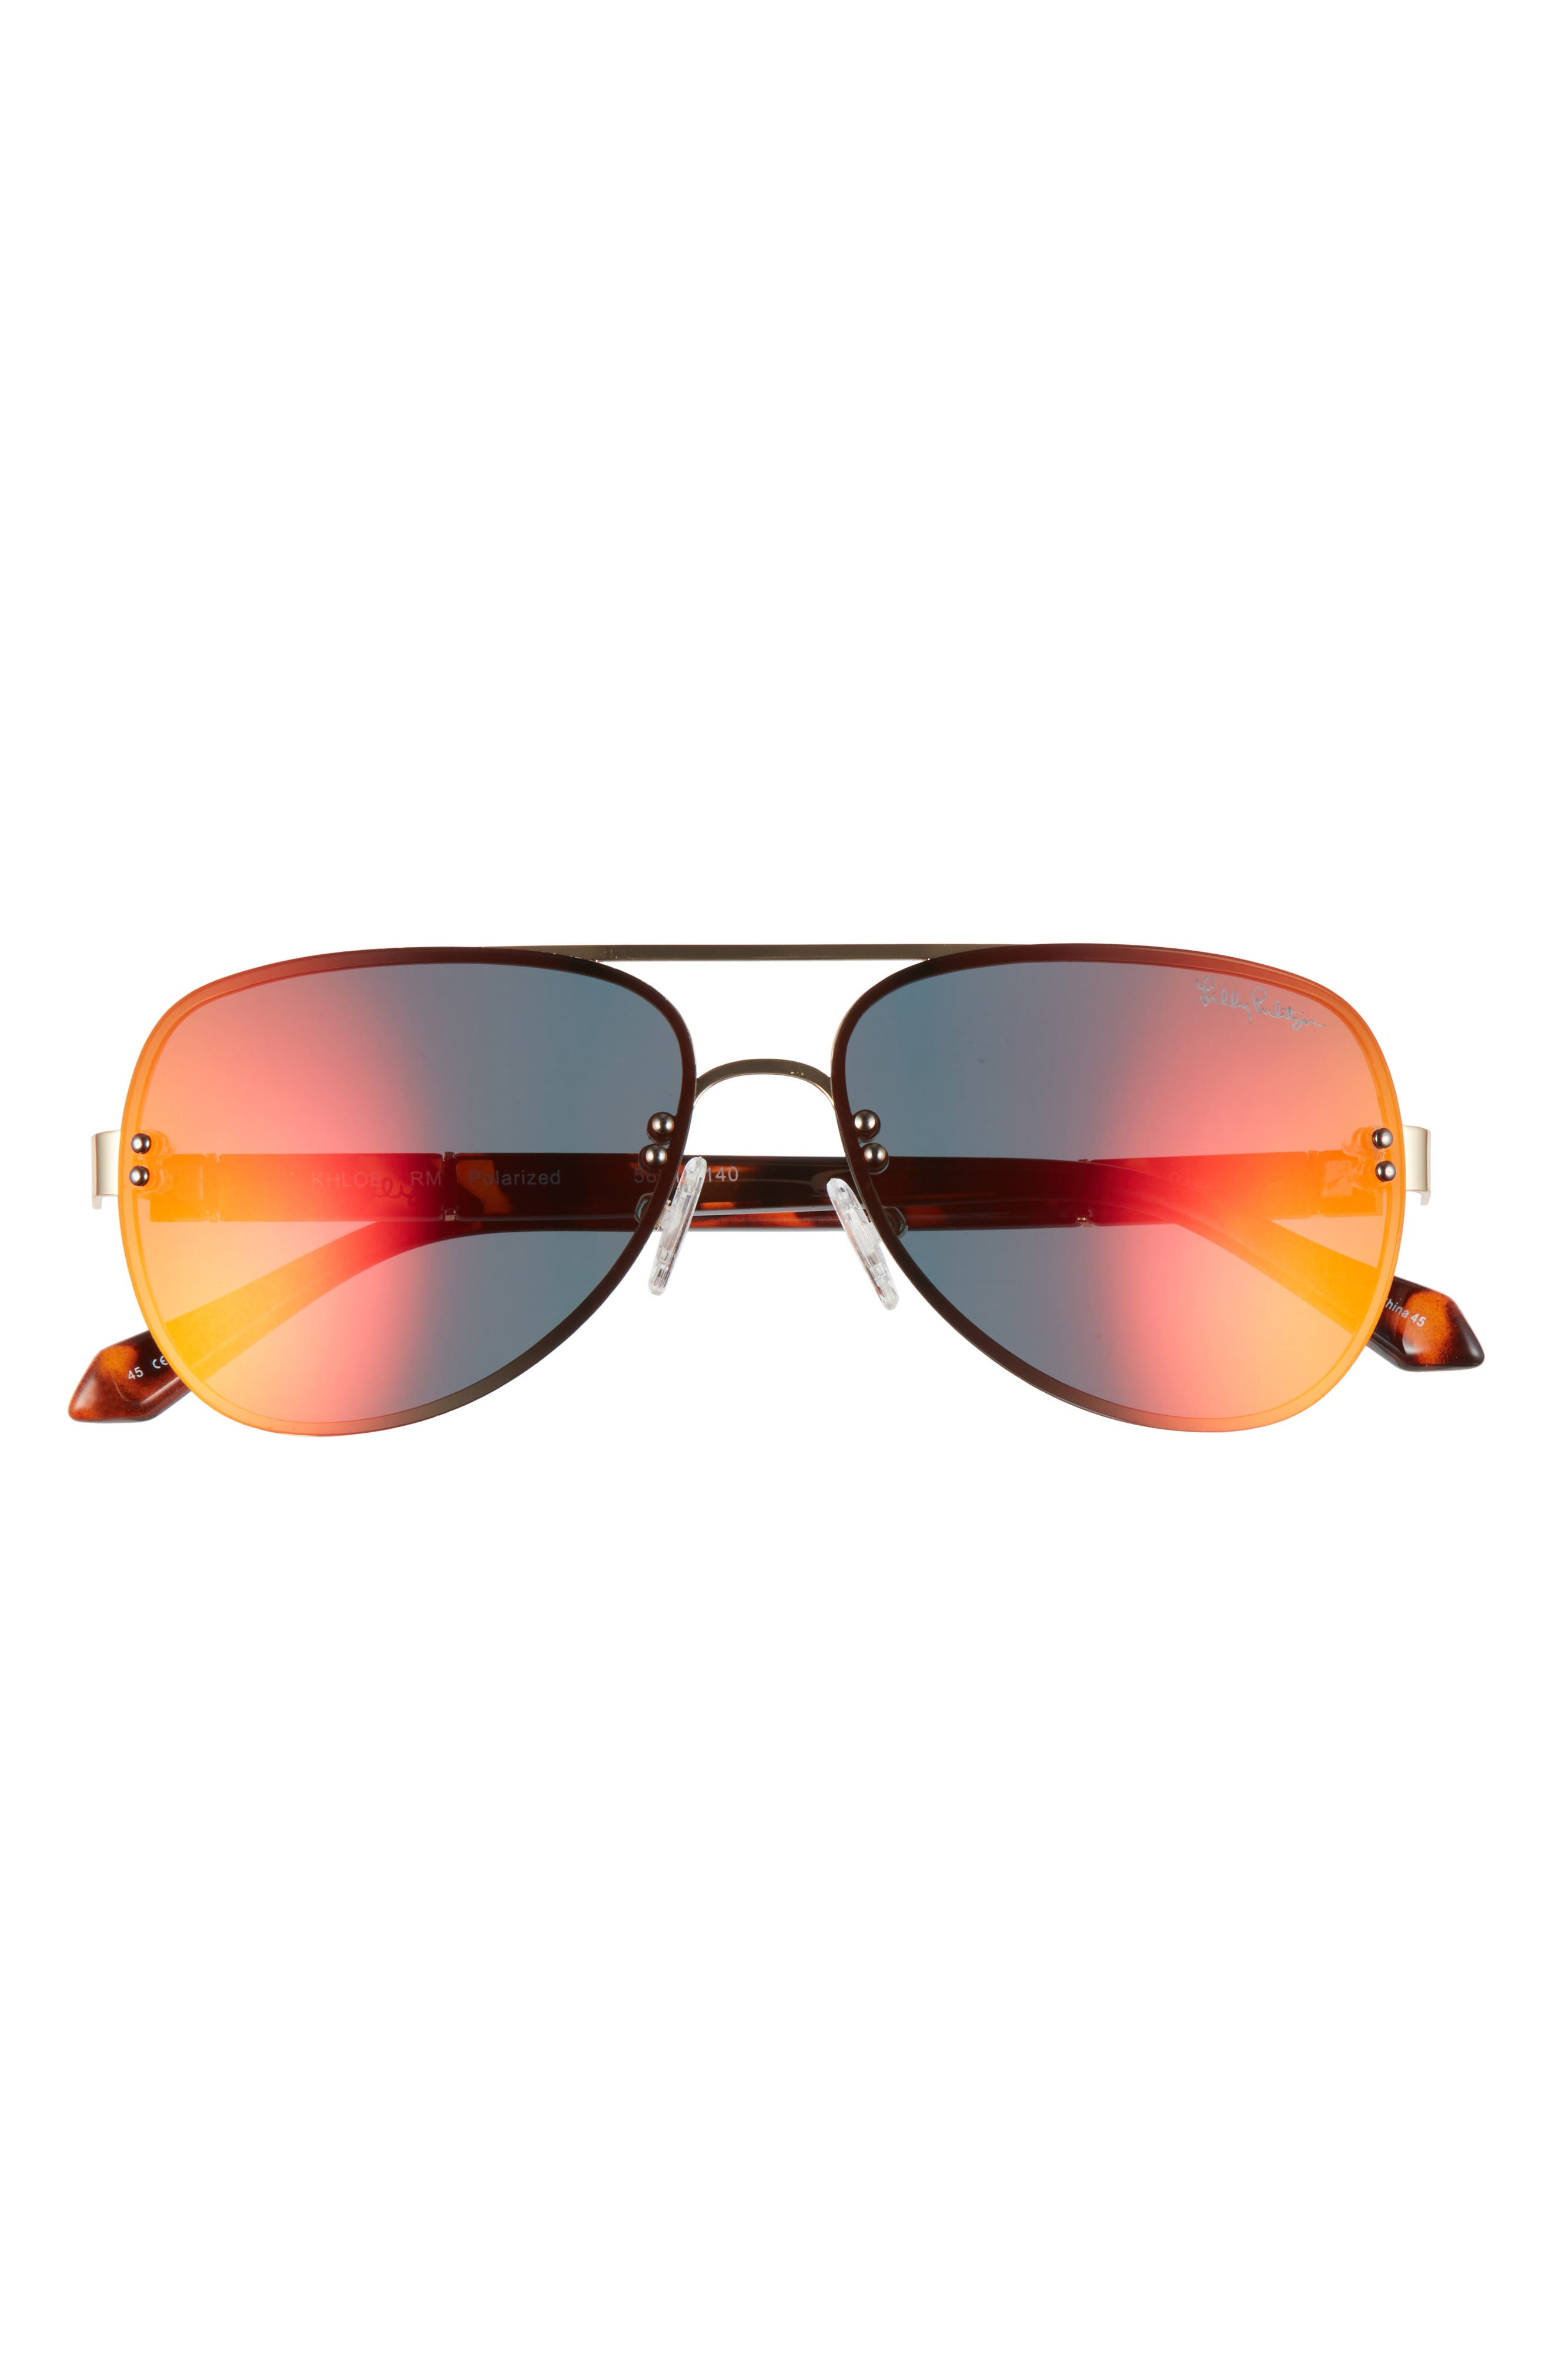 Elevate your style with the classic look of these full-coverage aviator sunglassess furnished with glare-reducing polarized lenses. Style Name: Lilly Pulitzer Khloe 58mm Polarized Aviator Sunglasses. Style Number: 6104397. Available in stores.